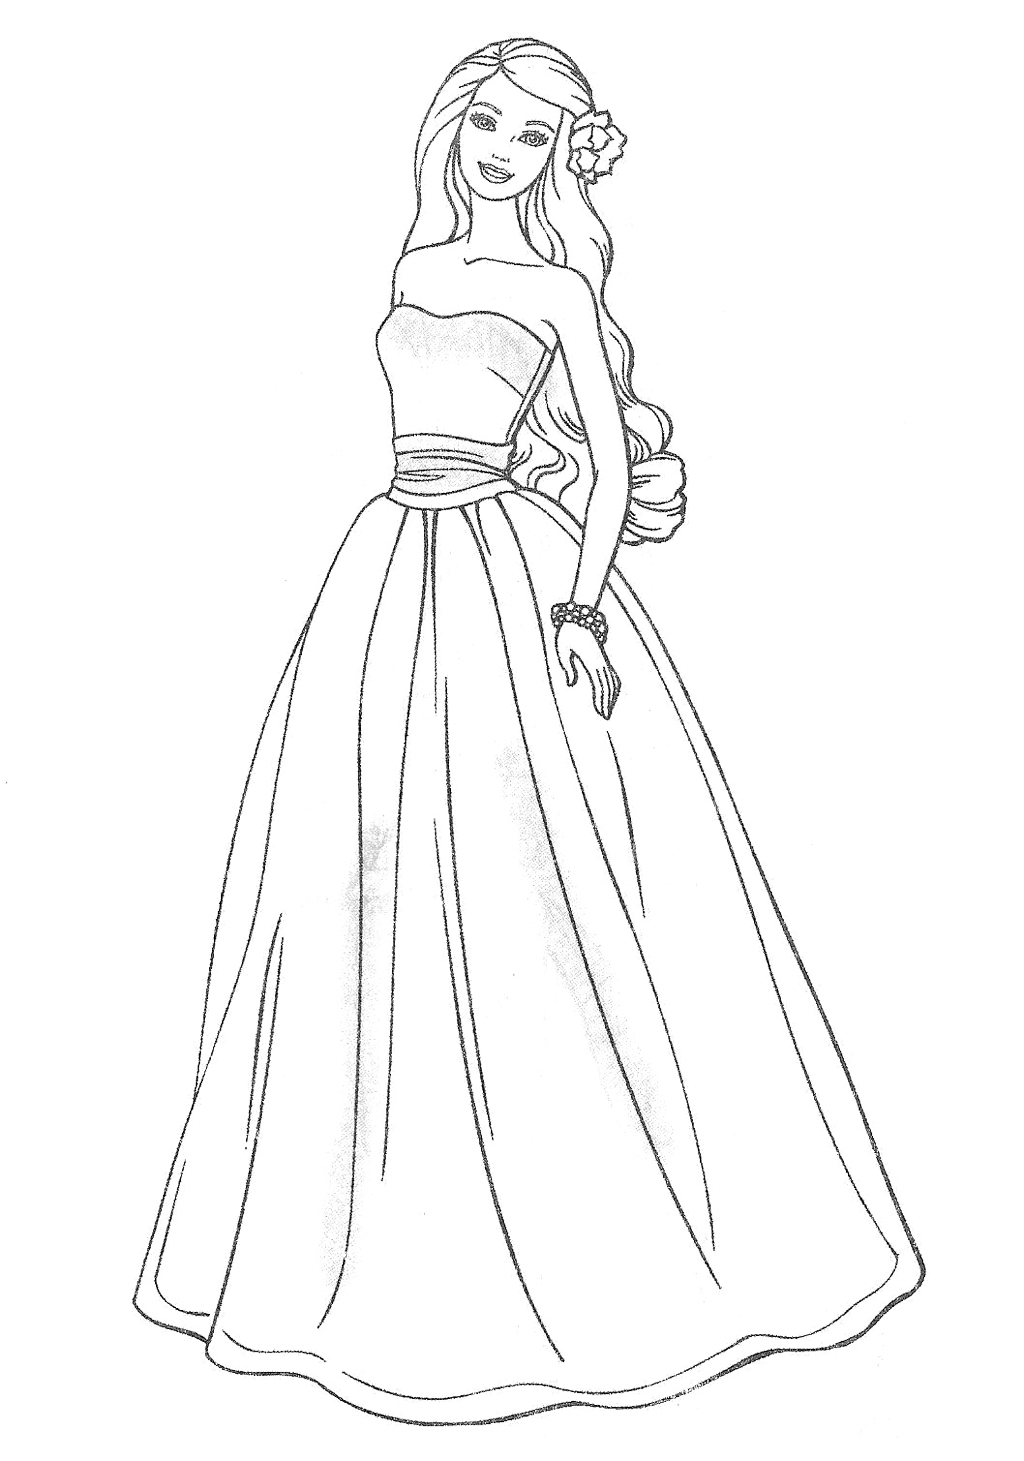 coloring pages for girls dresses dress coloring pages to download and print for free dresses coloring pages for girls